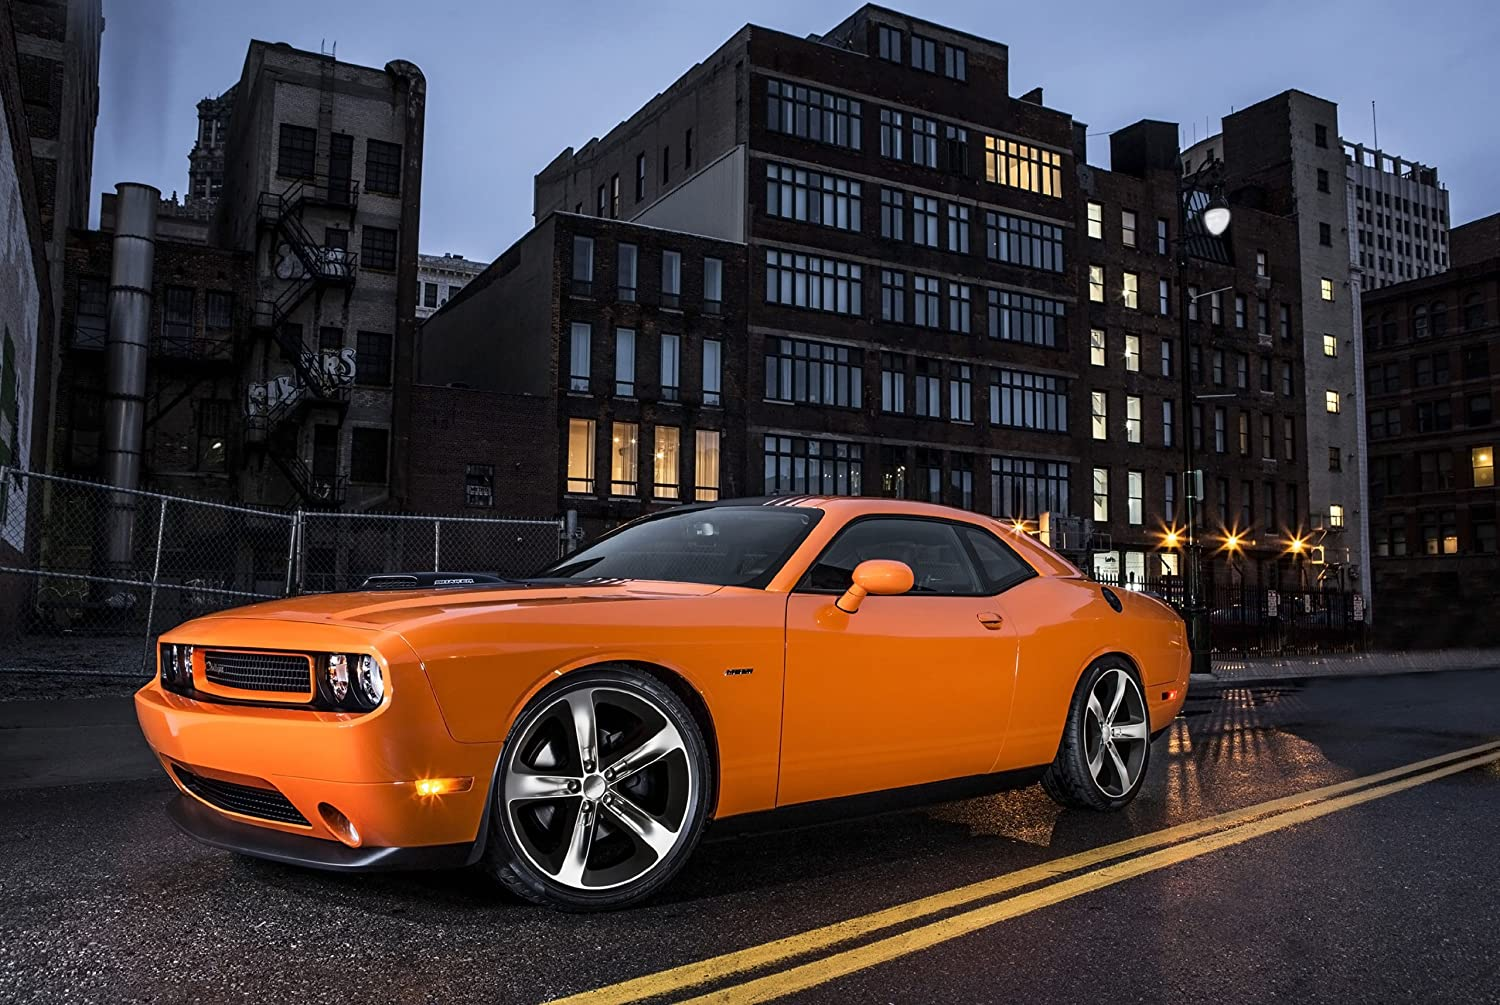 Wall Art Front Of A Dodge Challenger R//T Muscle Car Photo Car Poster Print